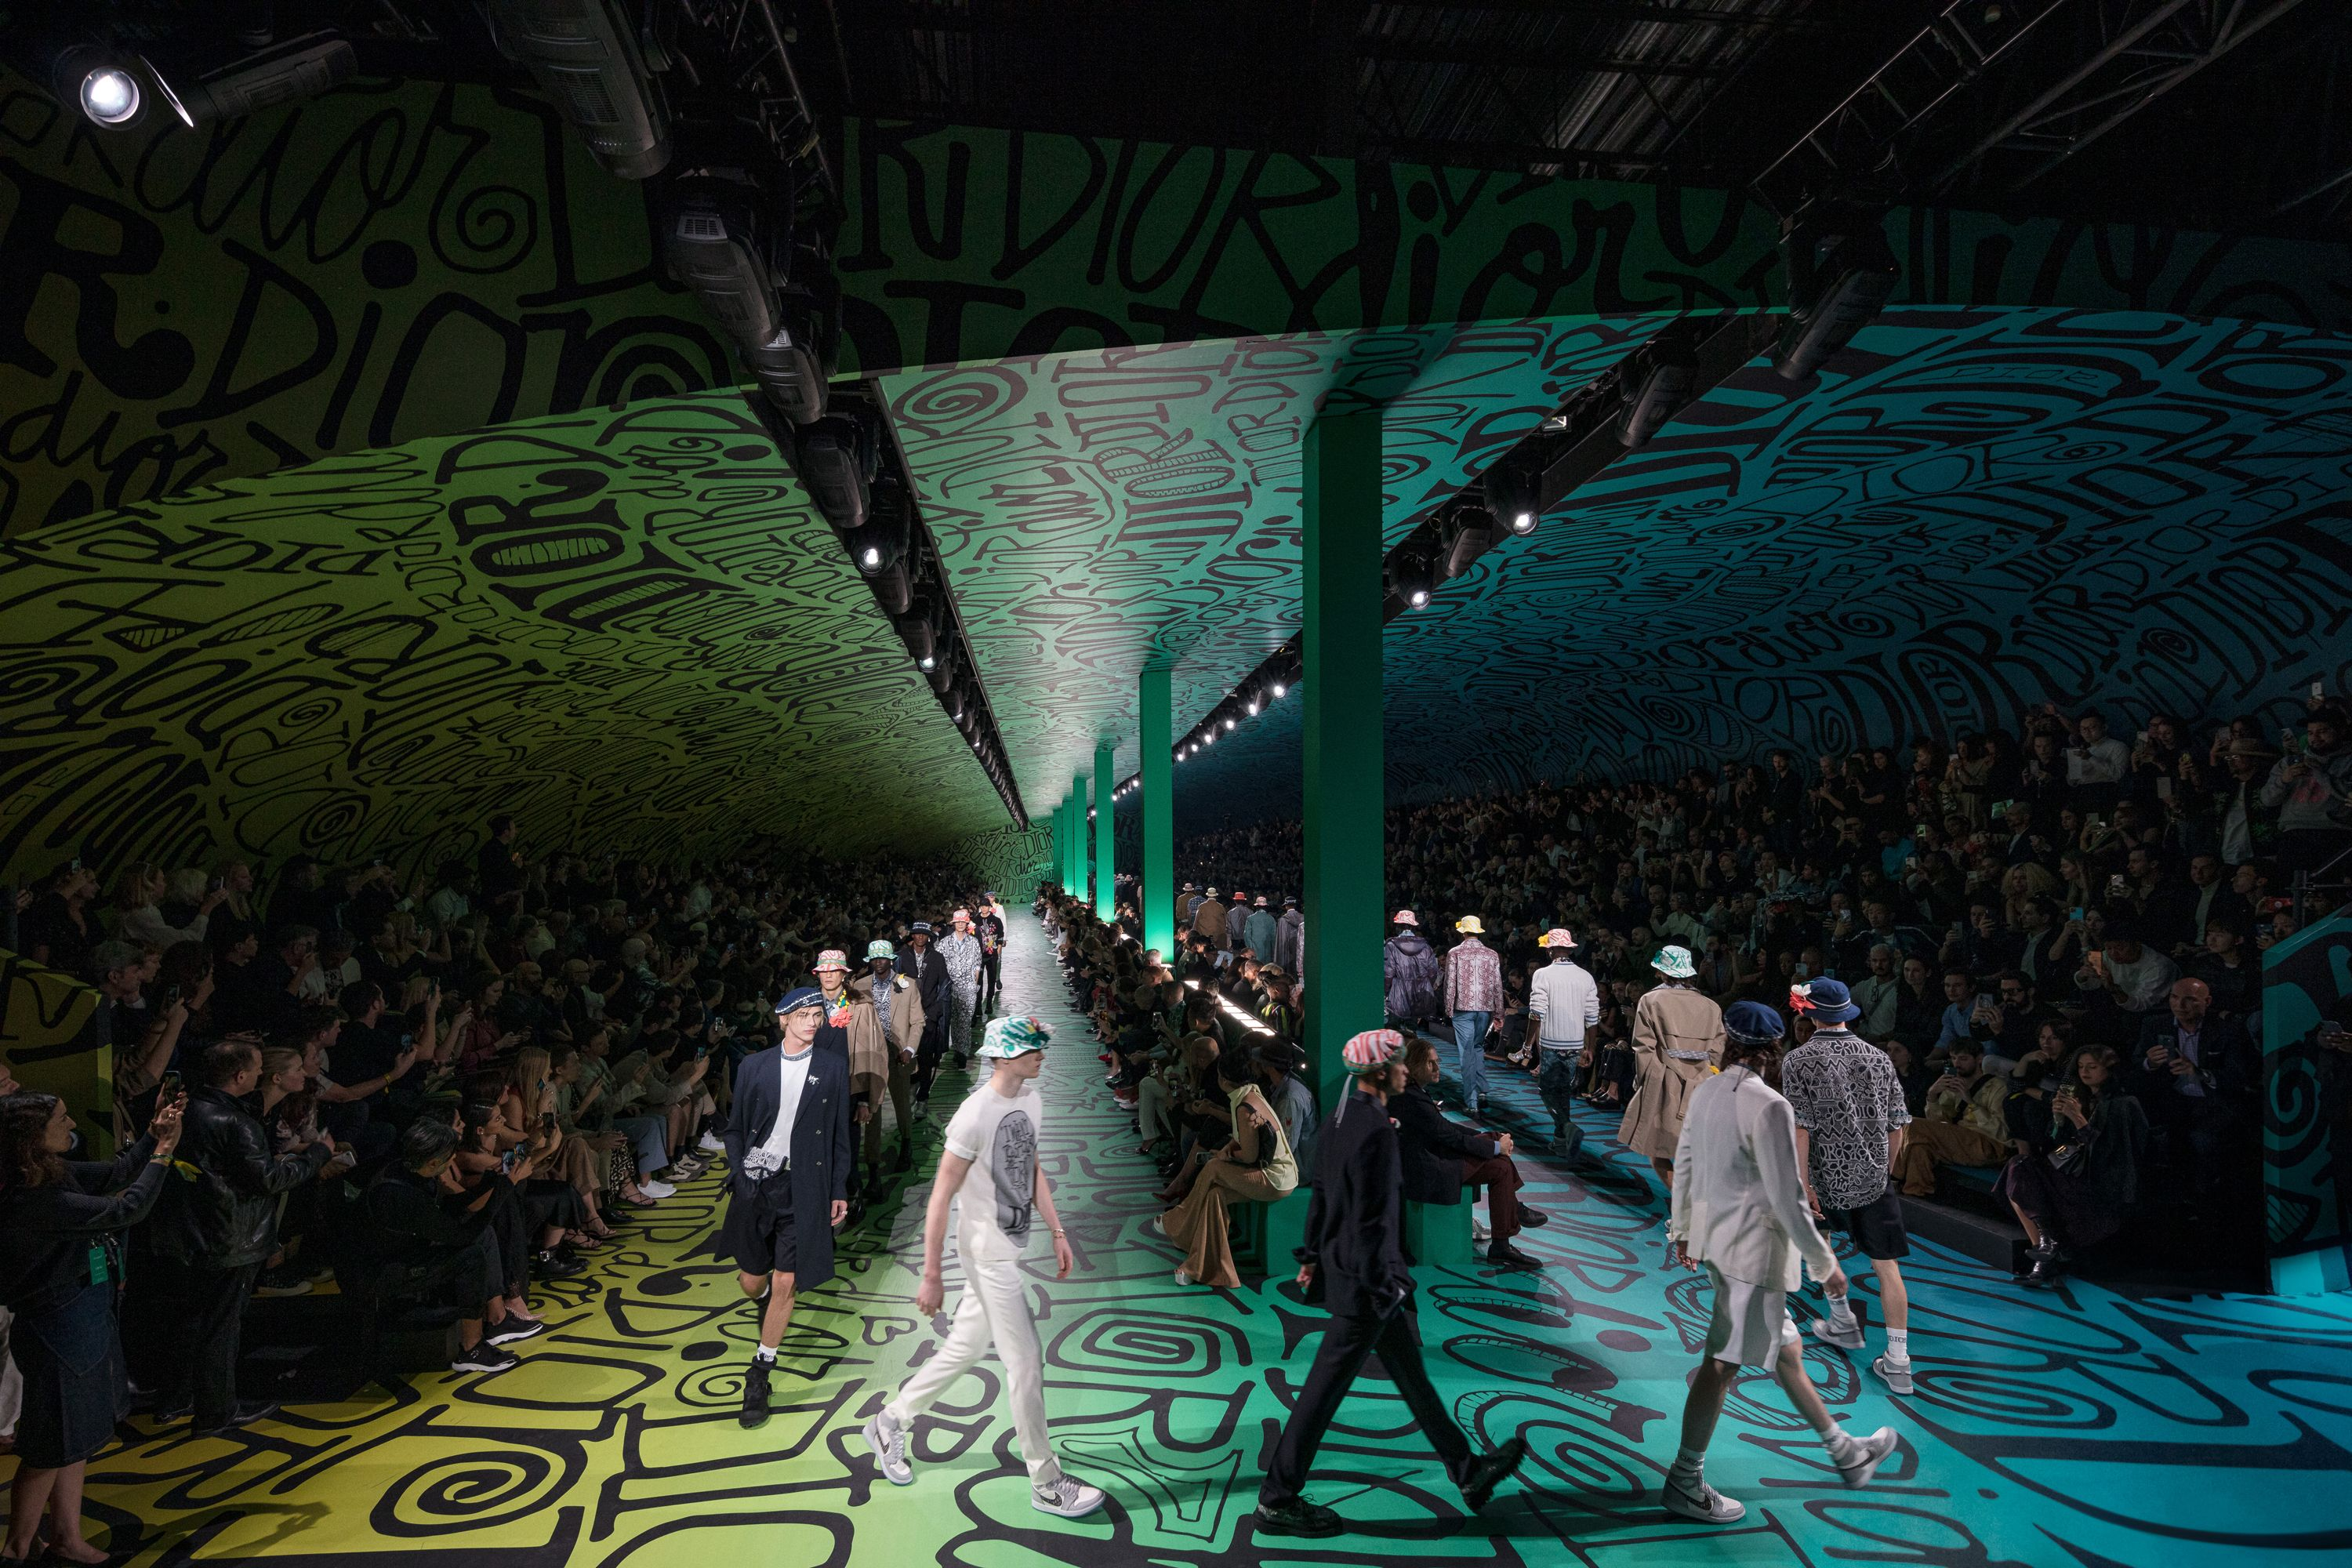 Dior Upstages Art Basel Miami Beach with Star-Studded Fashion Show